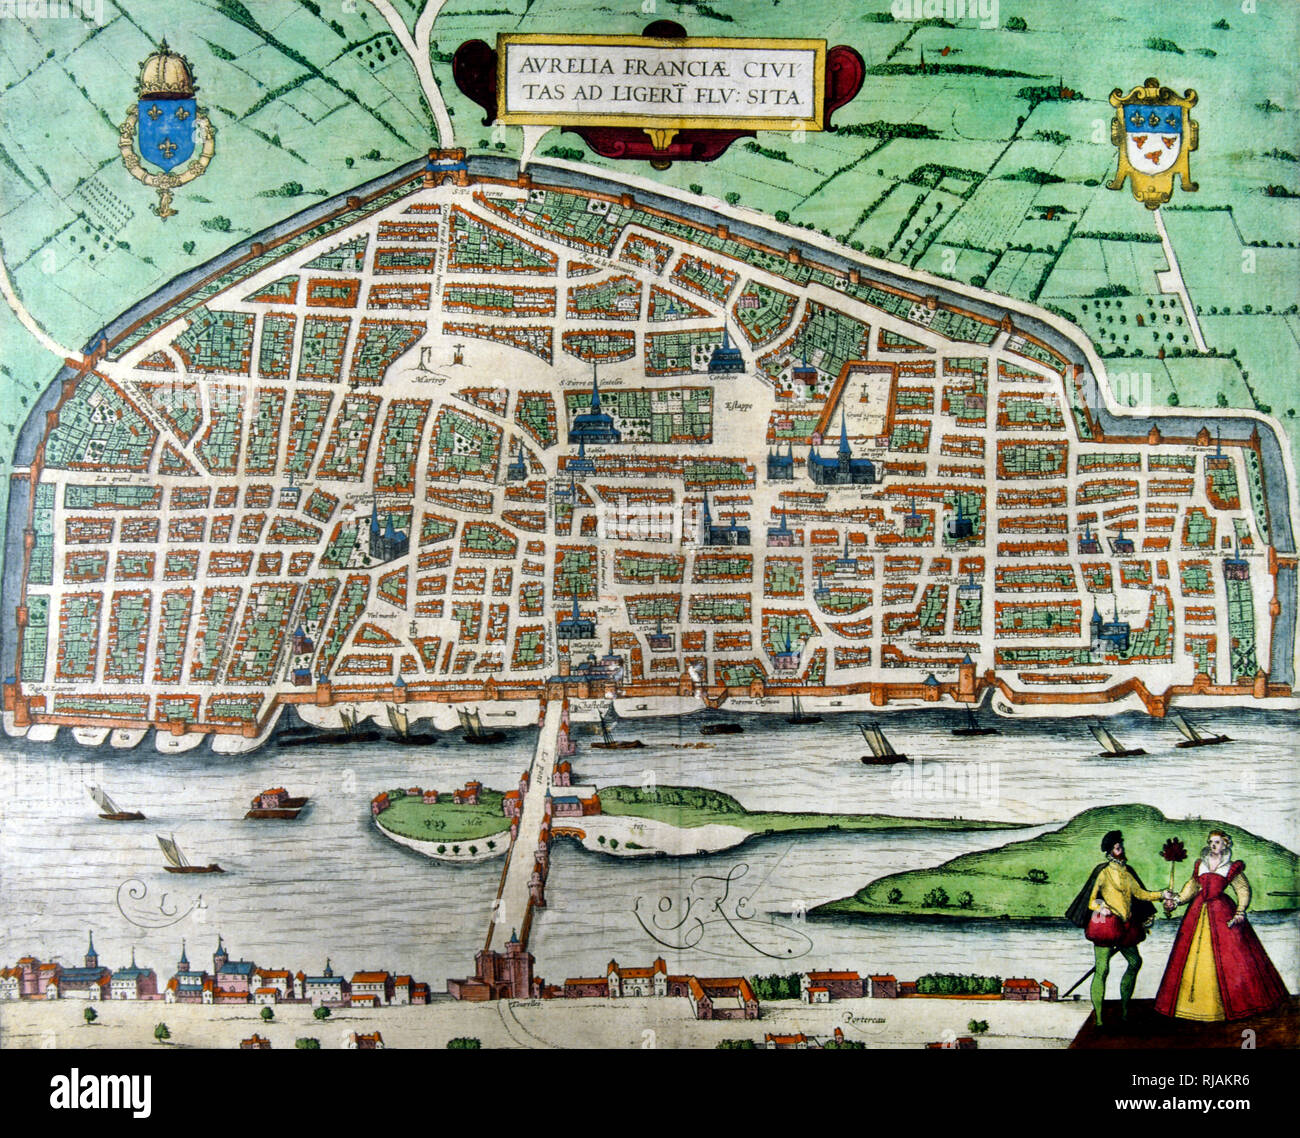 16th century plan of the city of Orleans in France. The city walls are visible. - Stock Image